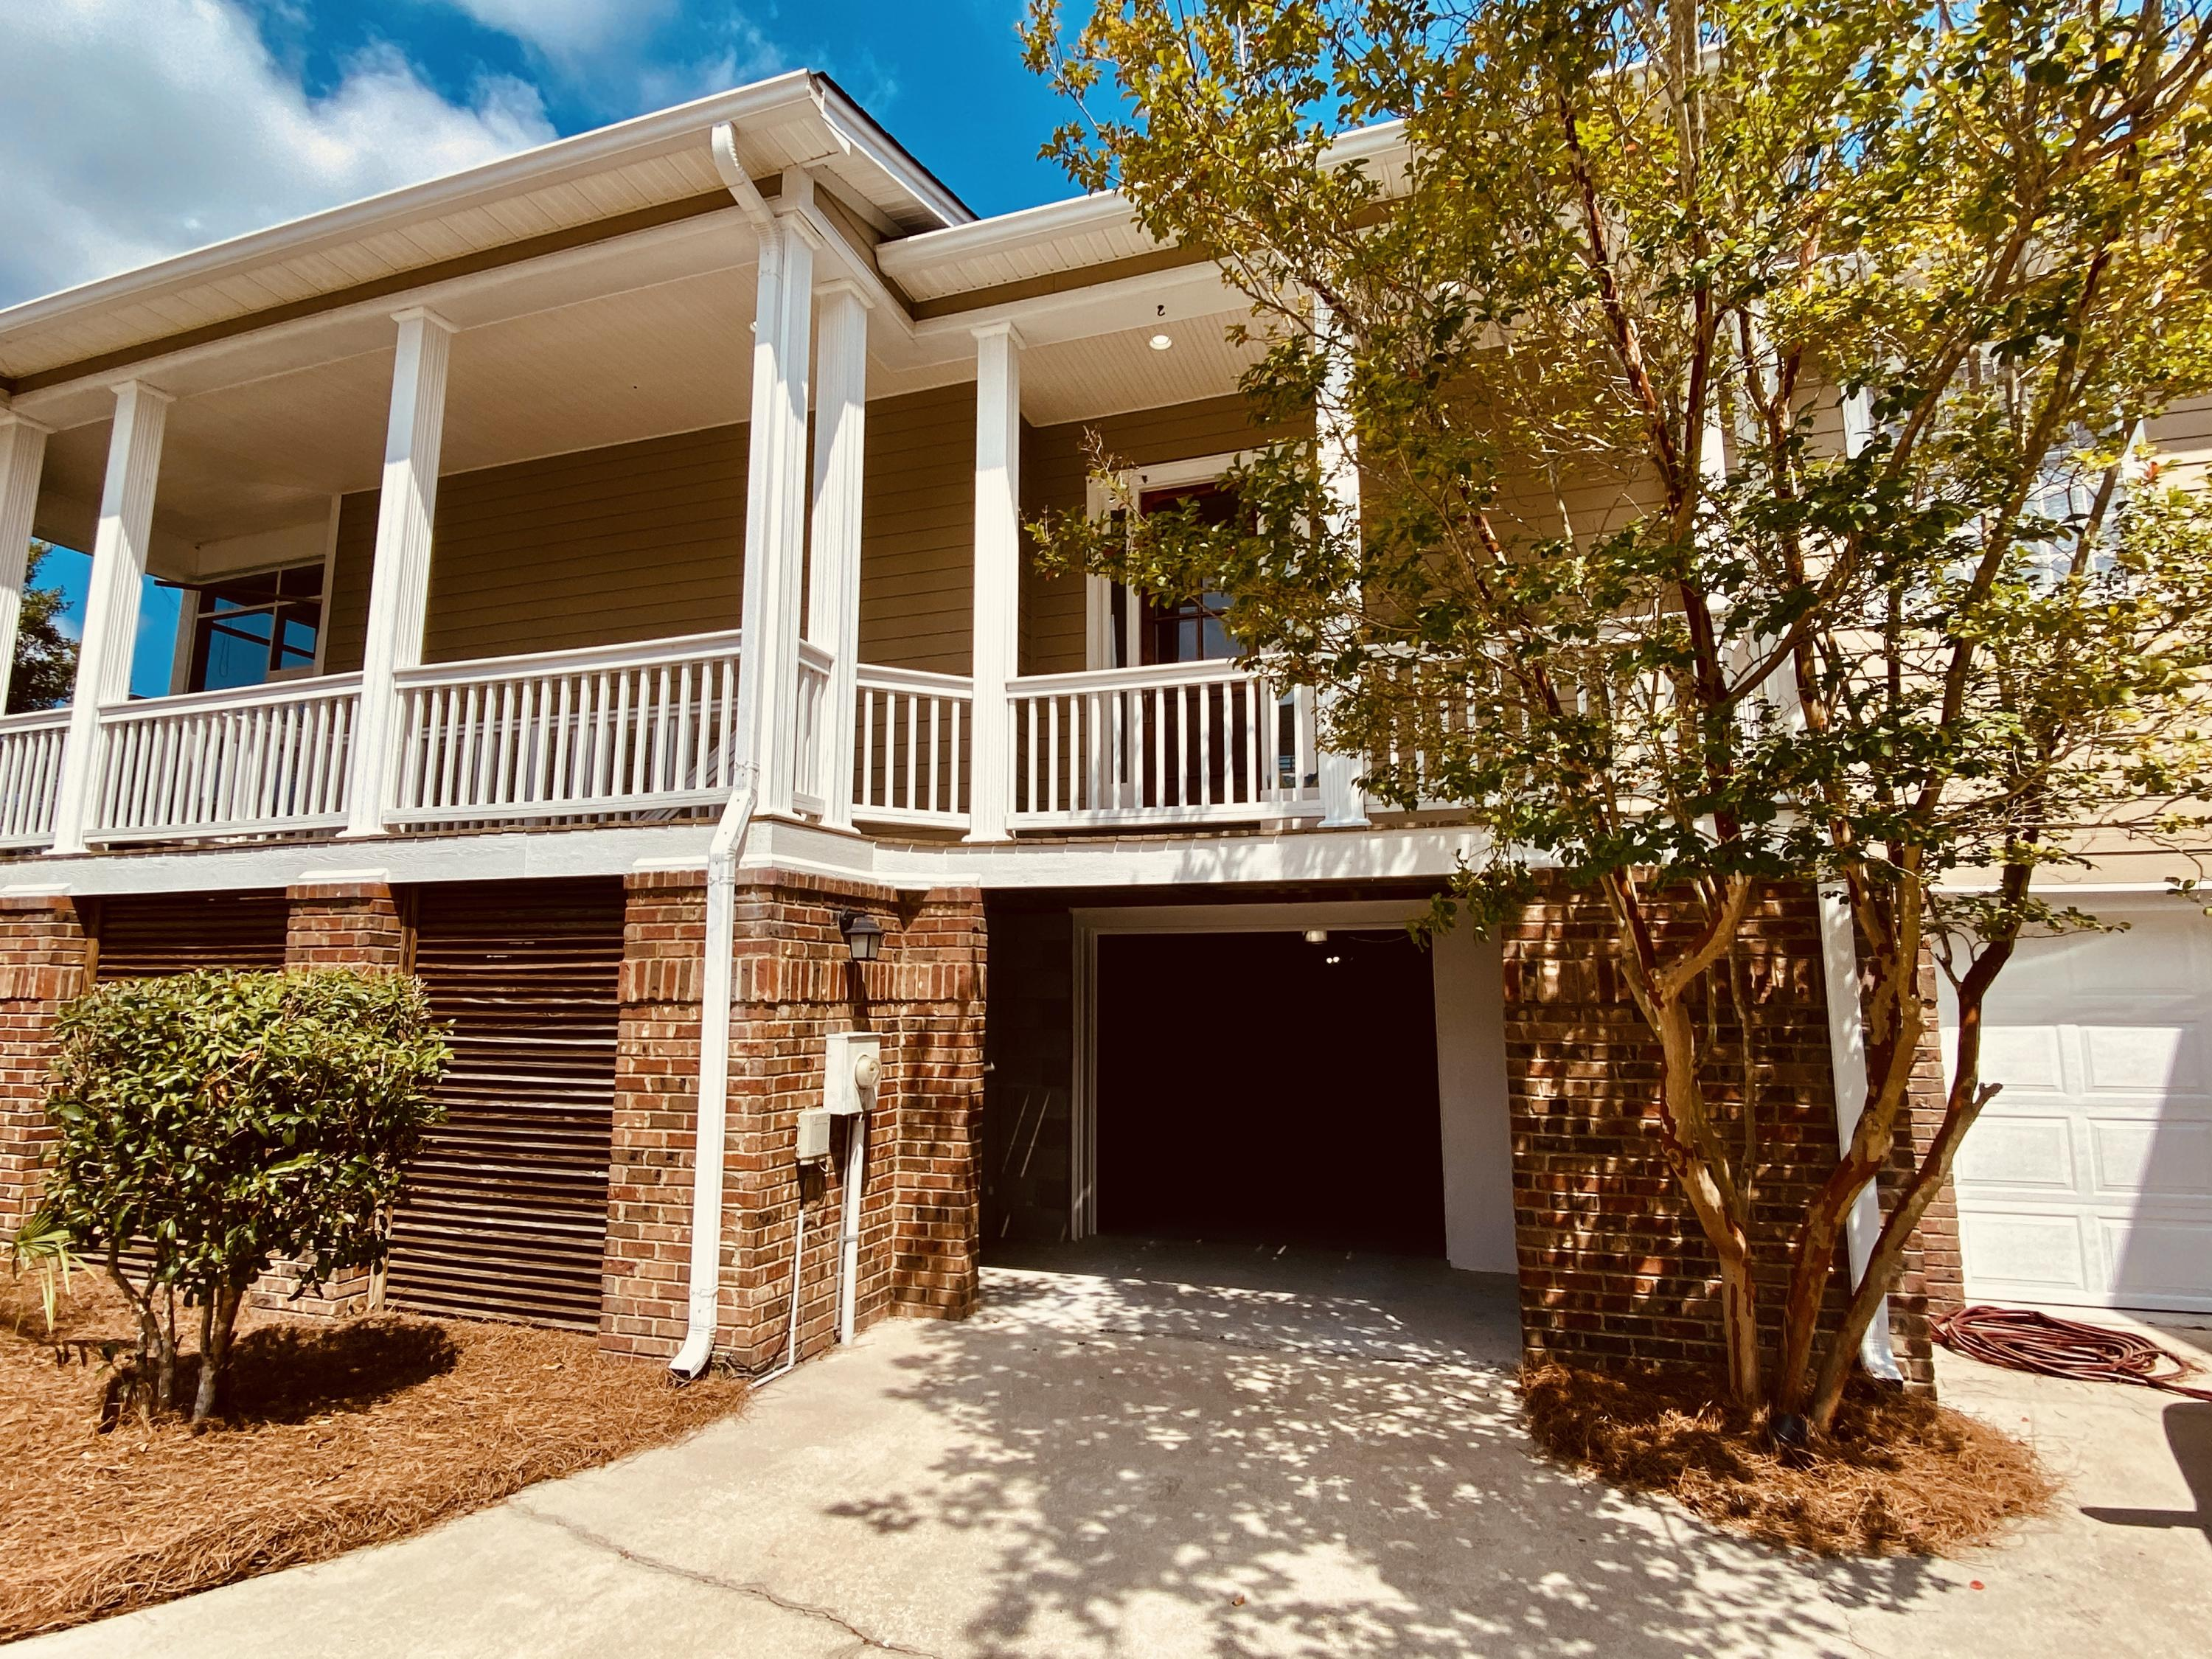 Rivertowne Country Club Homes For Sale - 1721 Rivertowne Country Club, Mount Pleasant, SC - 8